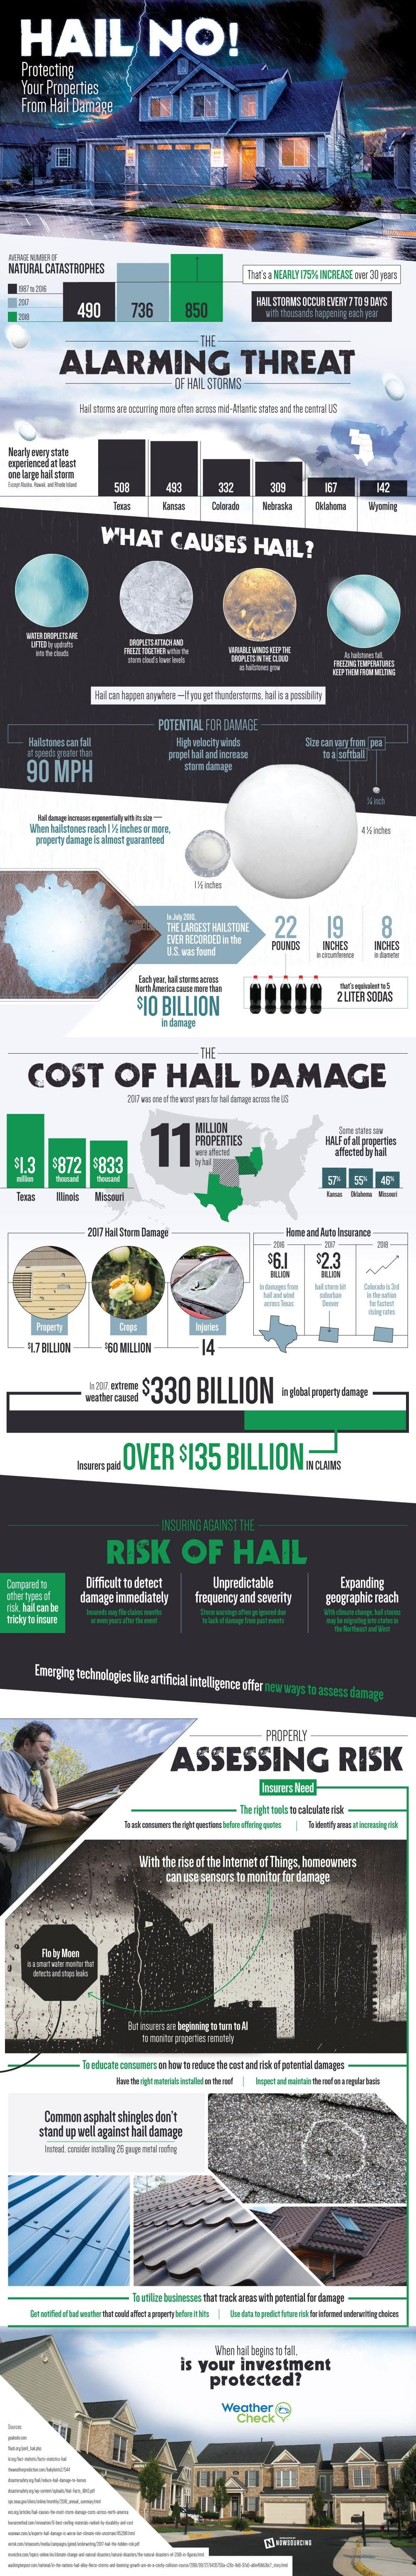 Hail No! The Alarming Cost of Hail Damage #infographic